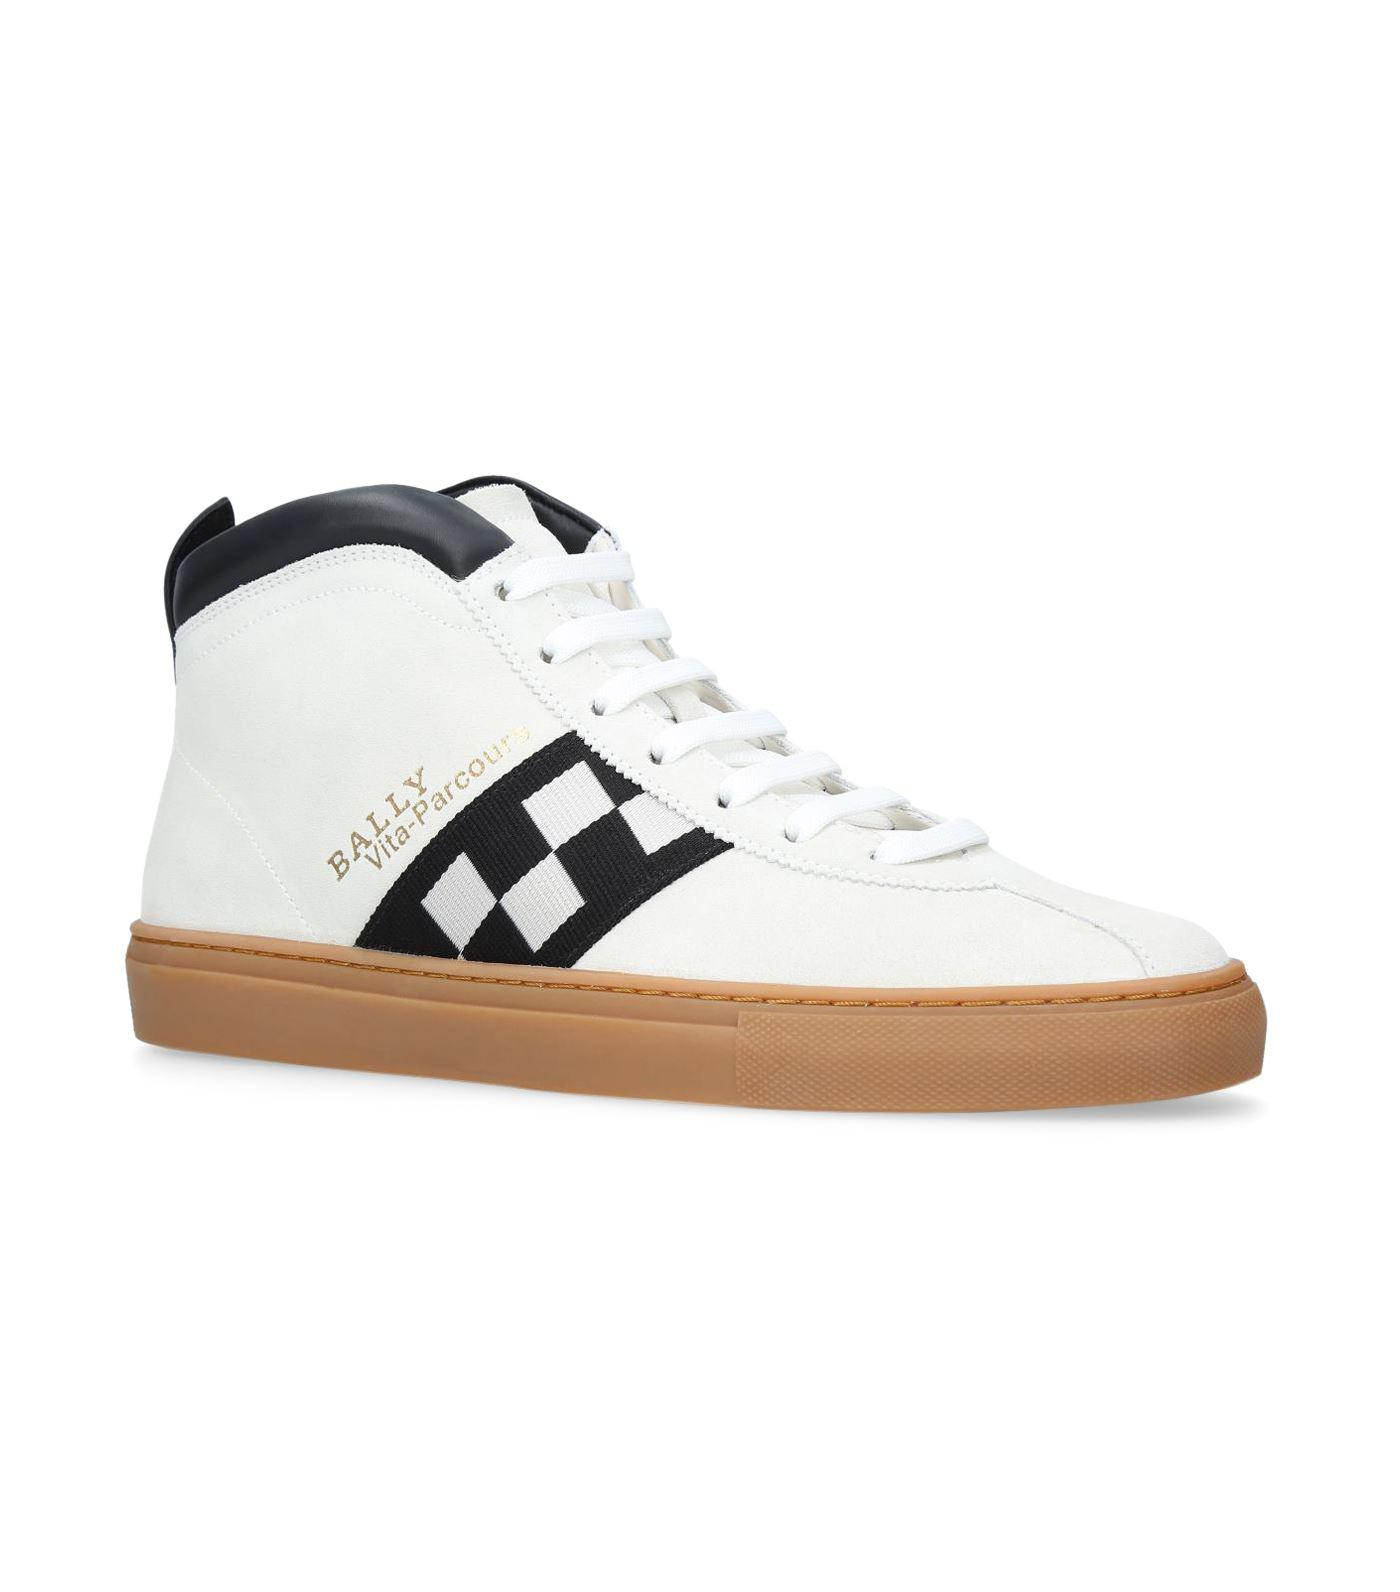 BallyVita-Parcours Retro Leather High-Top Sneakers 7nJyh4